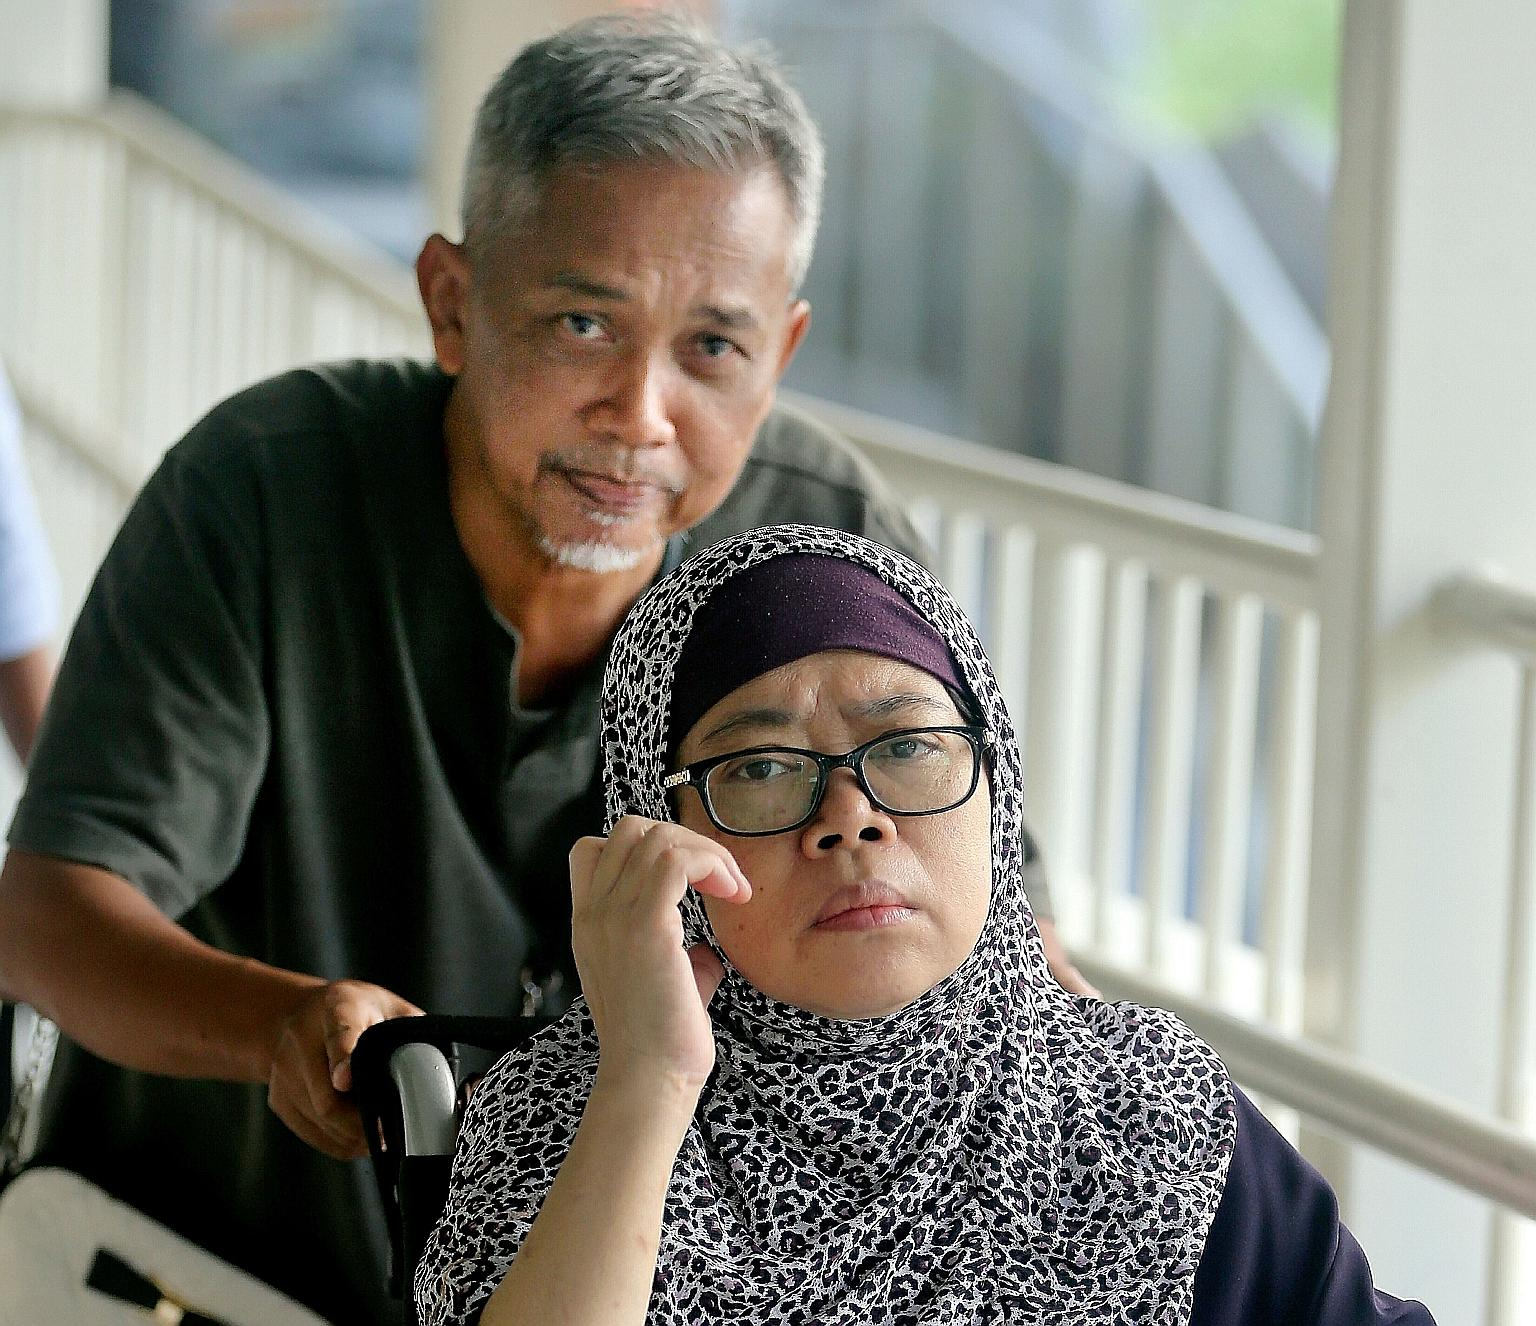 Zariah Mohd Ali  and her husband Mohamad Dahla were sentenced to jail on Thursday, 1 August.